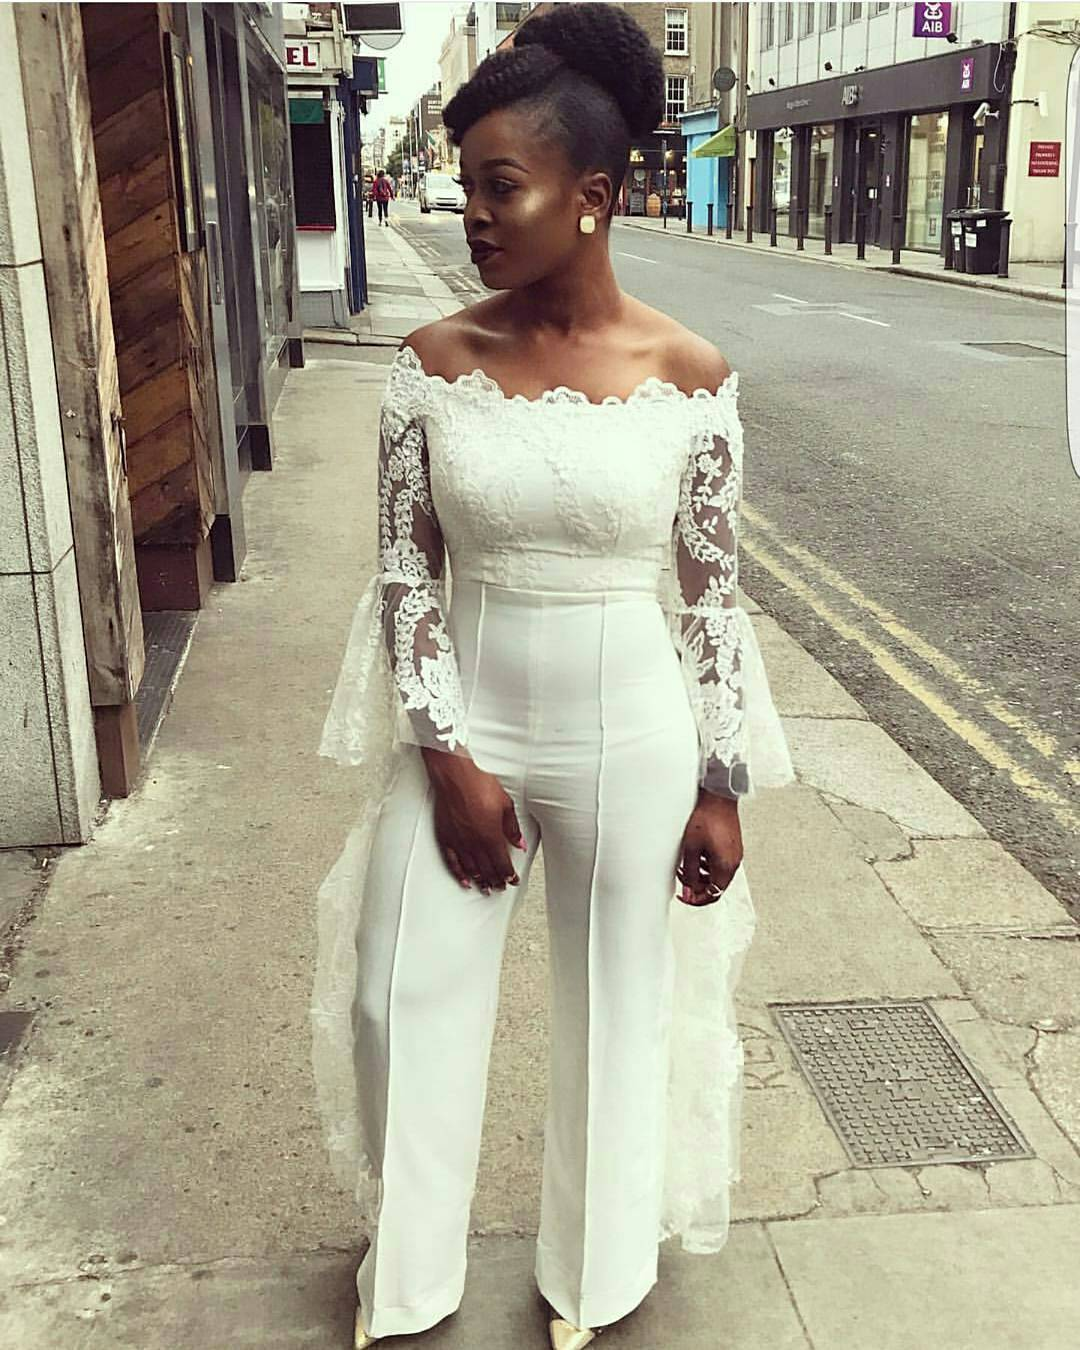 Serving brides some wedding reception outfits a million for Brides dress for wedding reception